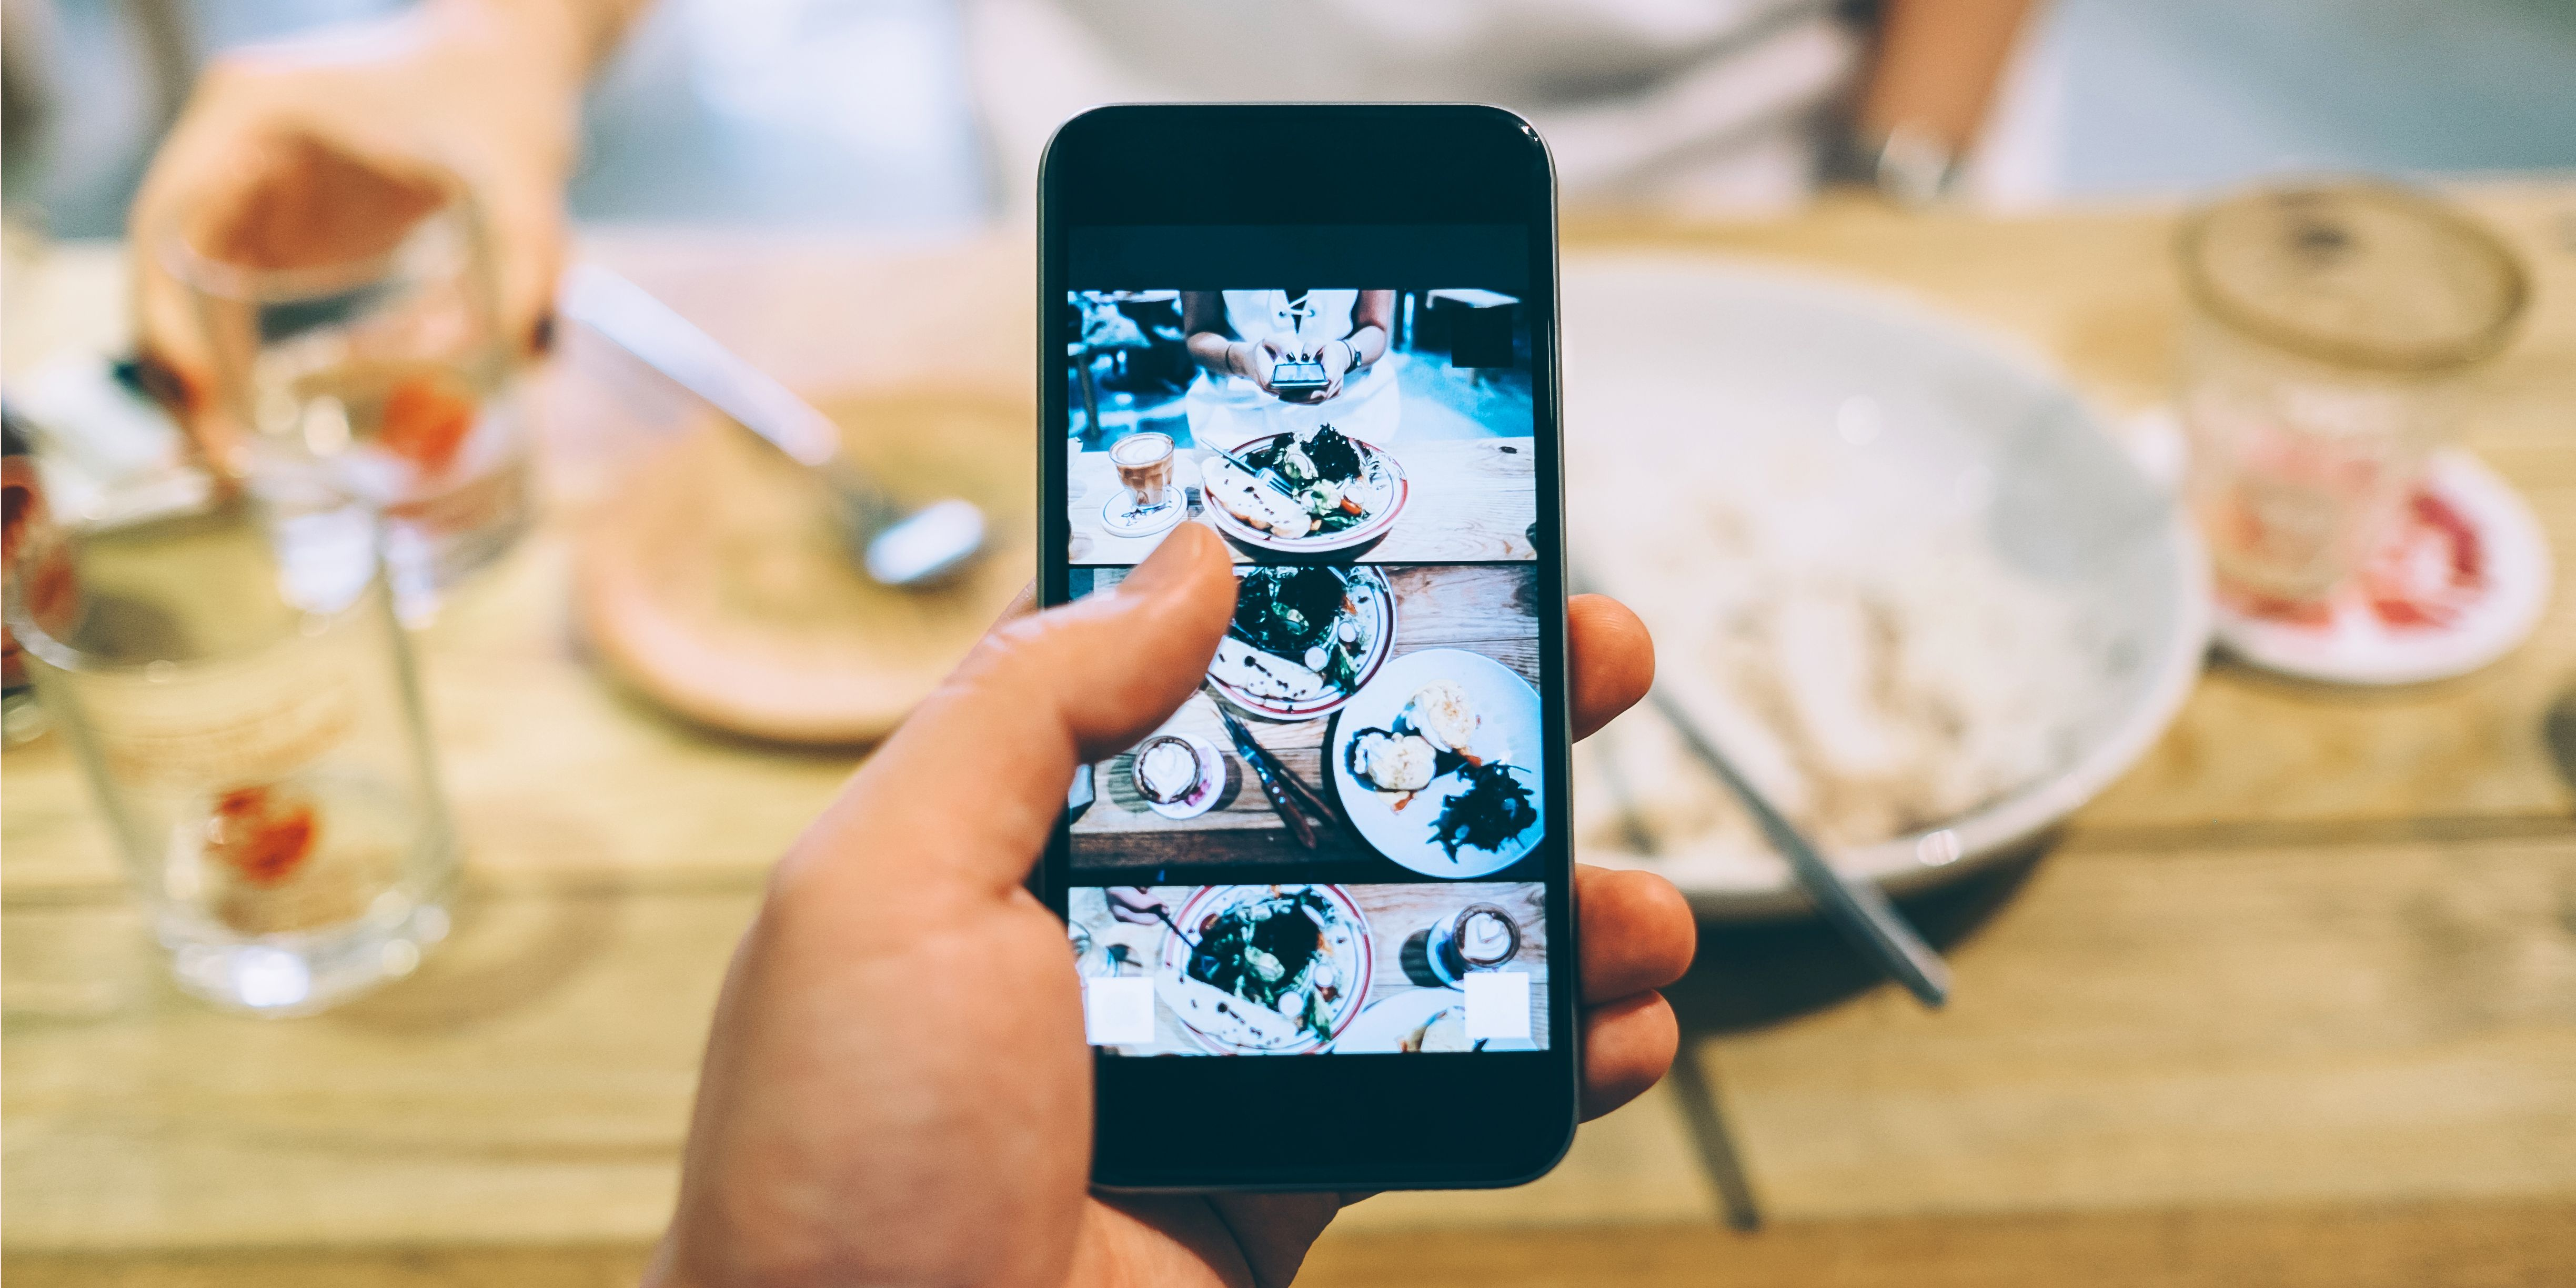 13 Best Photo Editing Apps in 2018 - Mobile Apps for Editing